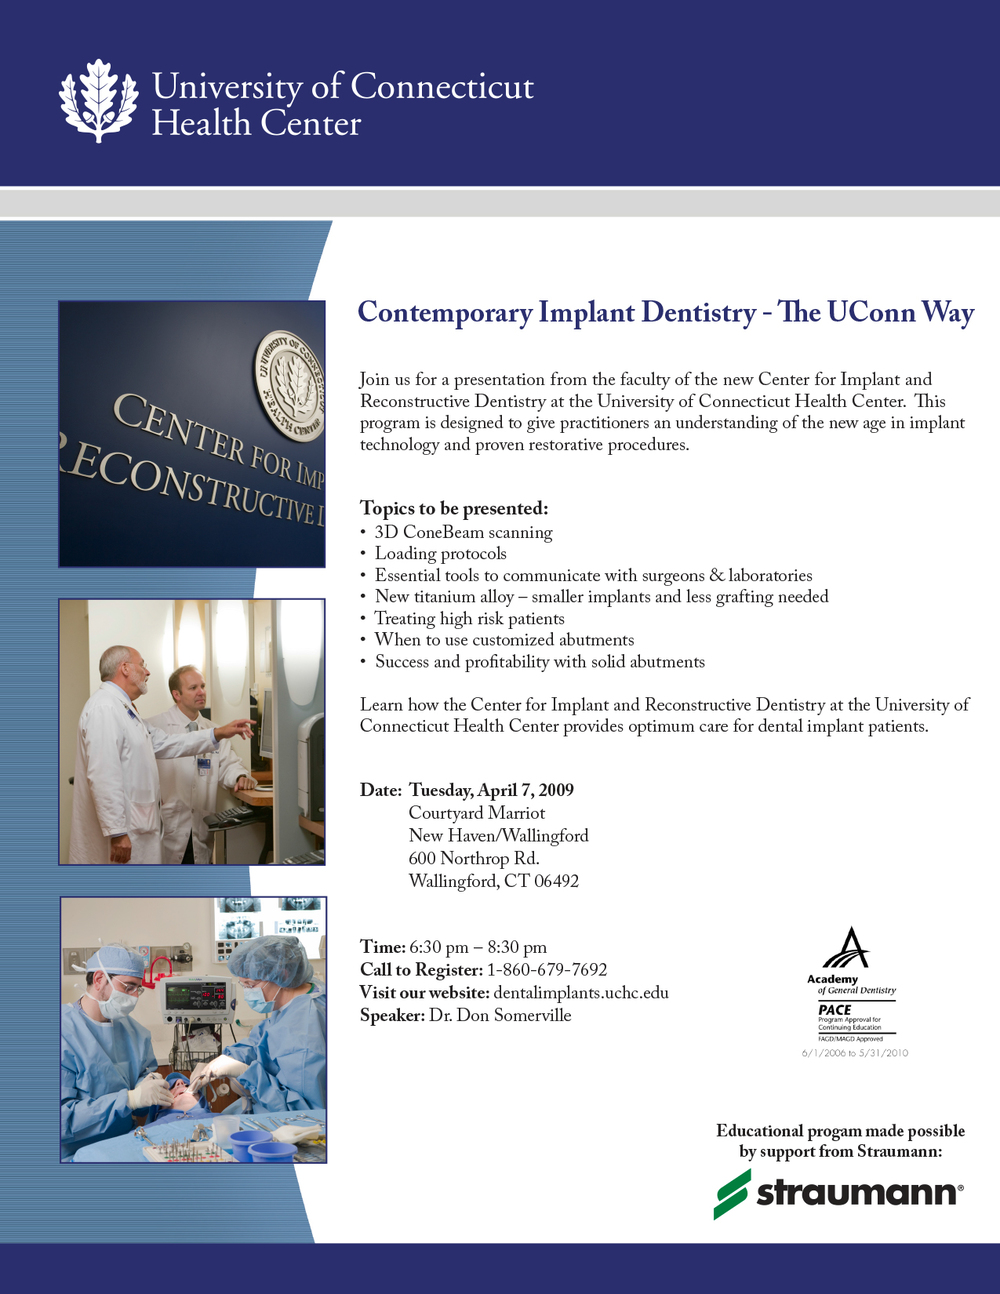 University of Connecticut Health Center Education Flyer